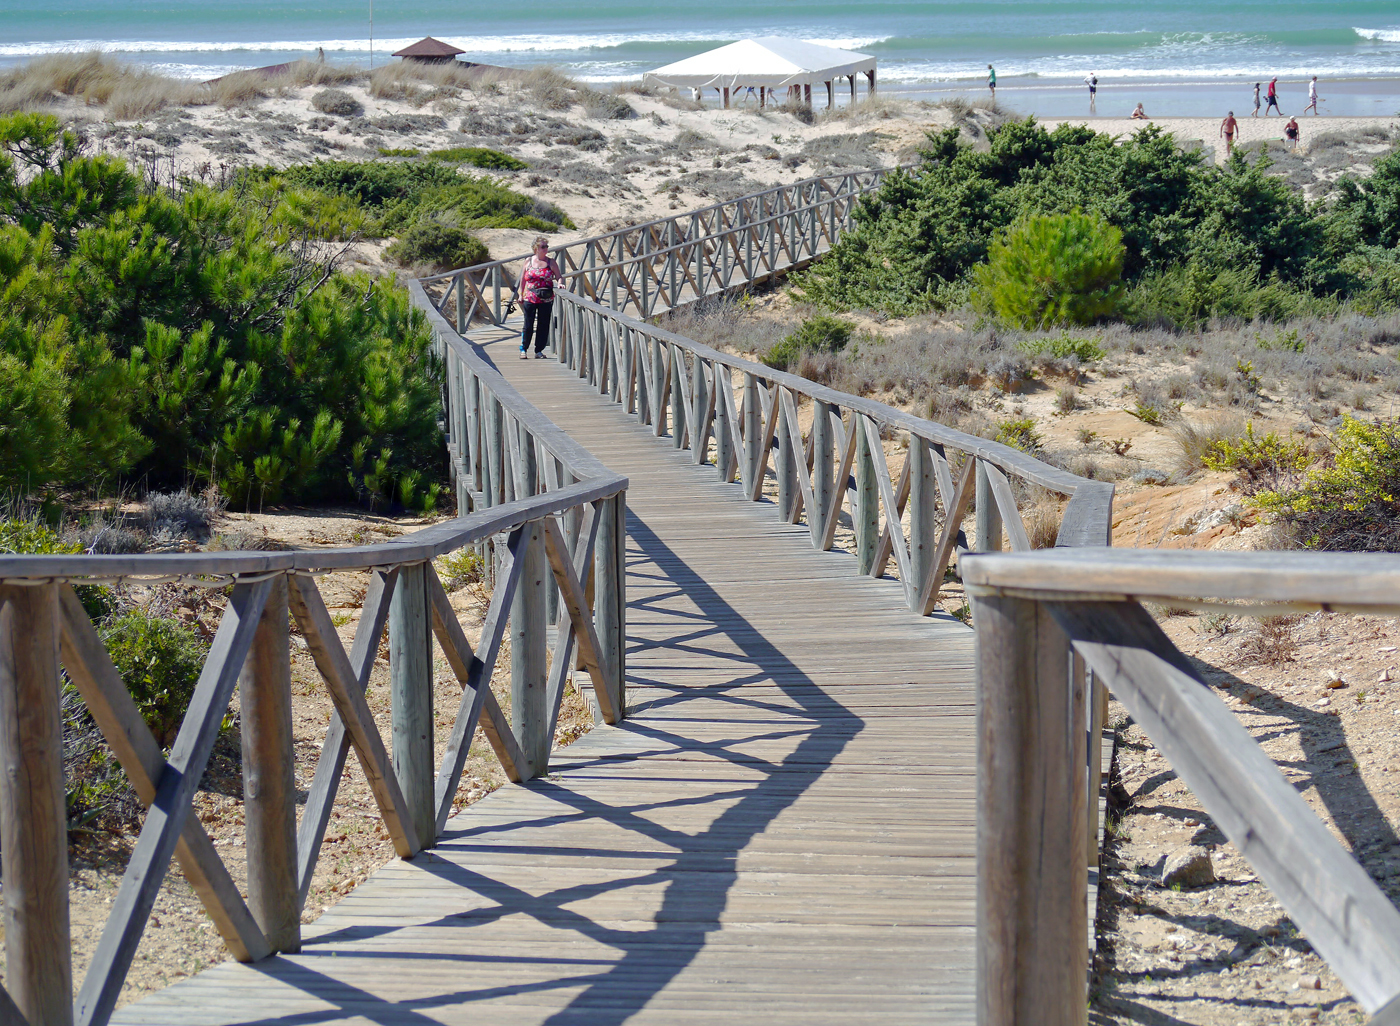 WALKWAY TO BEACH by Dave Taylor.jpg